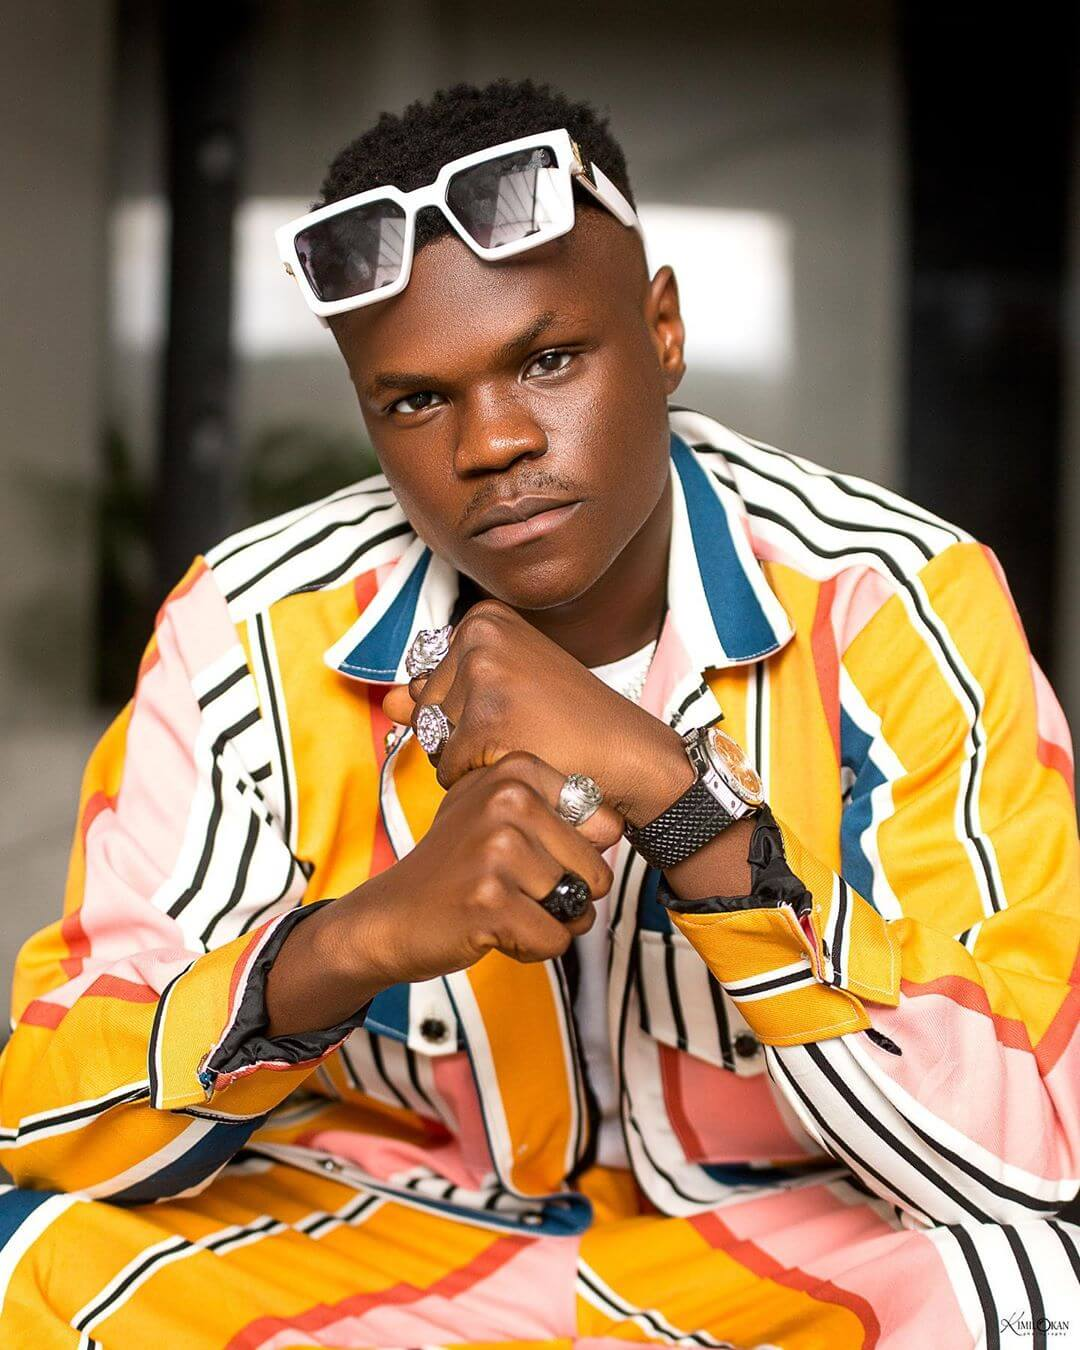 Bad Boy Timz Narrates A Weird Experience With A Female Fan